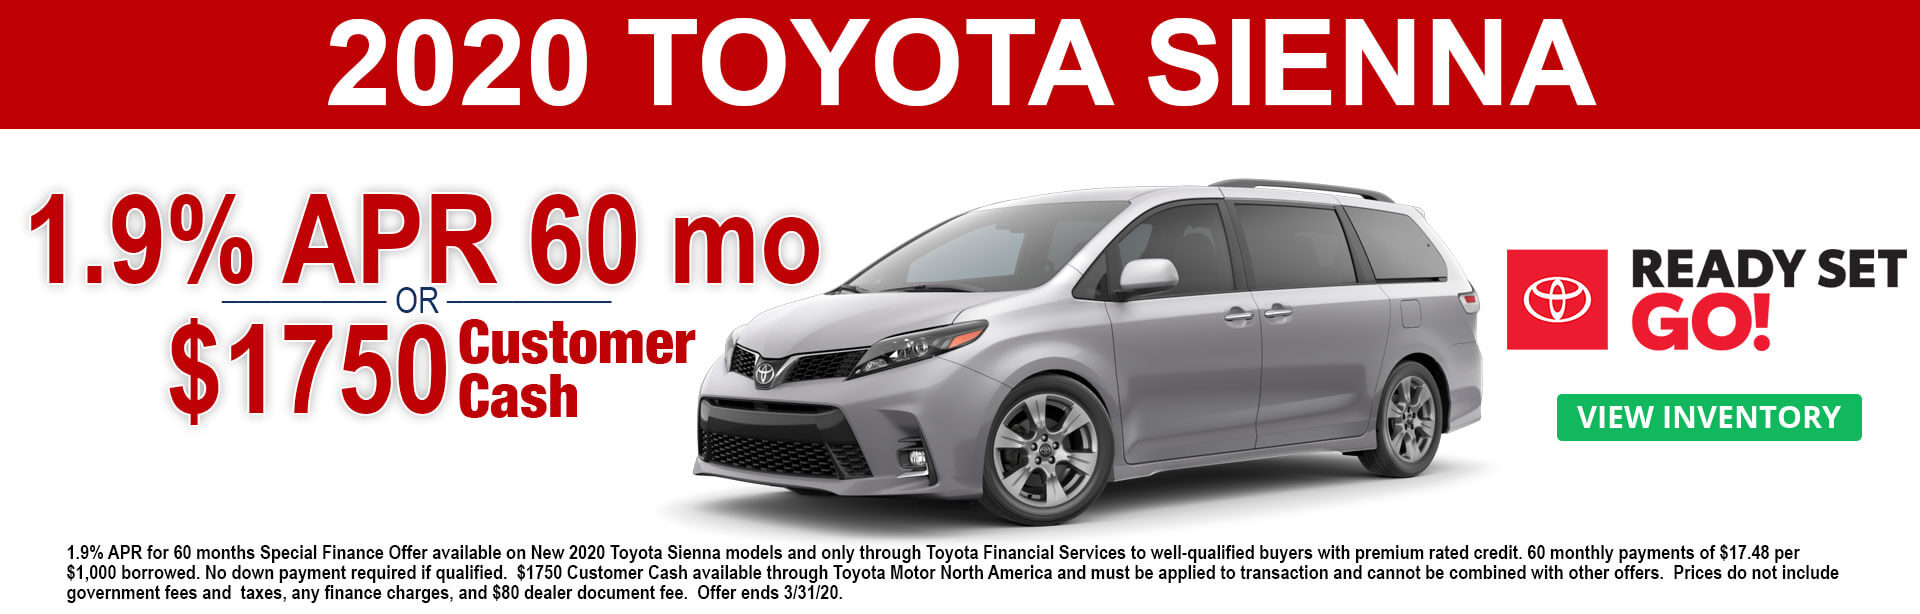 2020 Toyota Sienna APR and Cash Offer